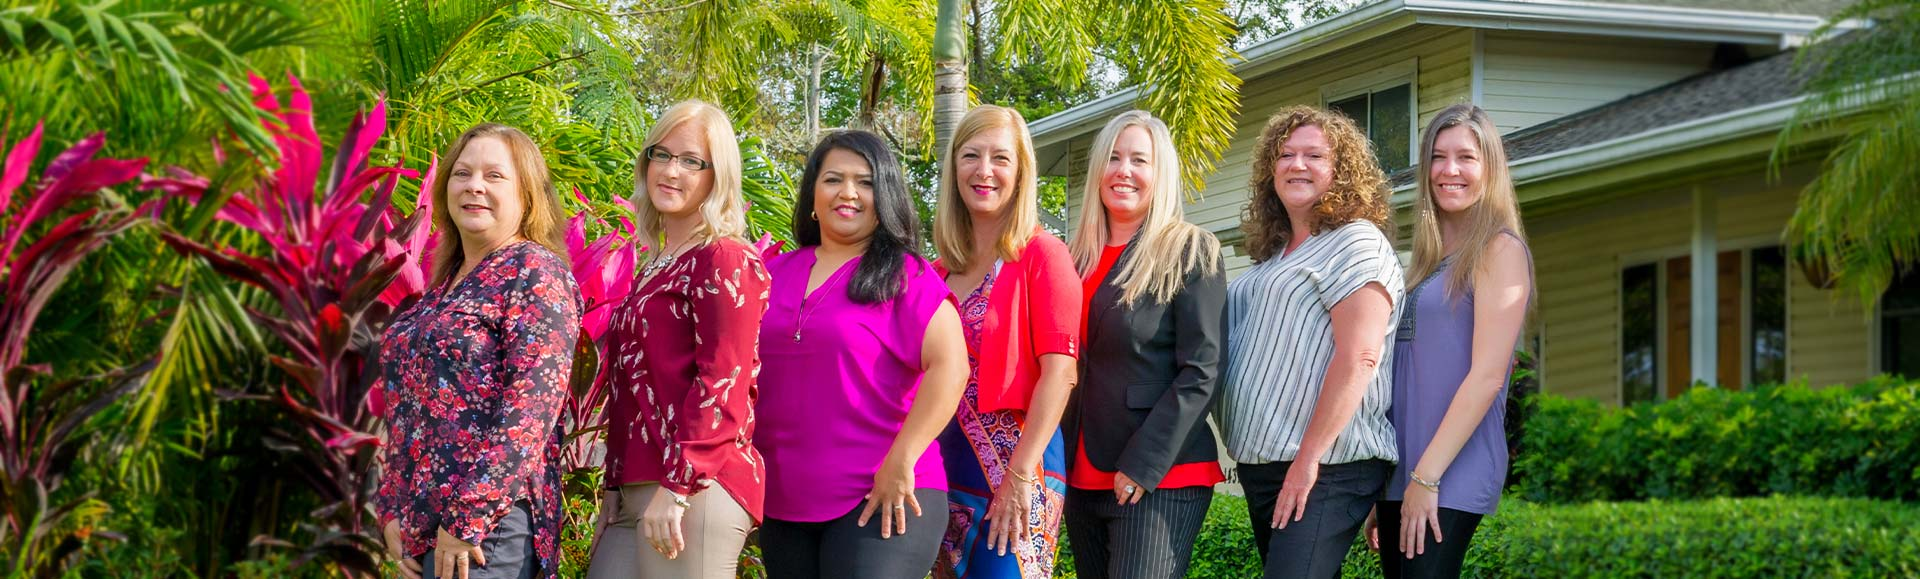 Our Dedicated Office Staff | Greenscapes of Southwest Florida, Inc.